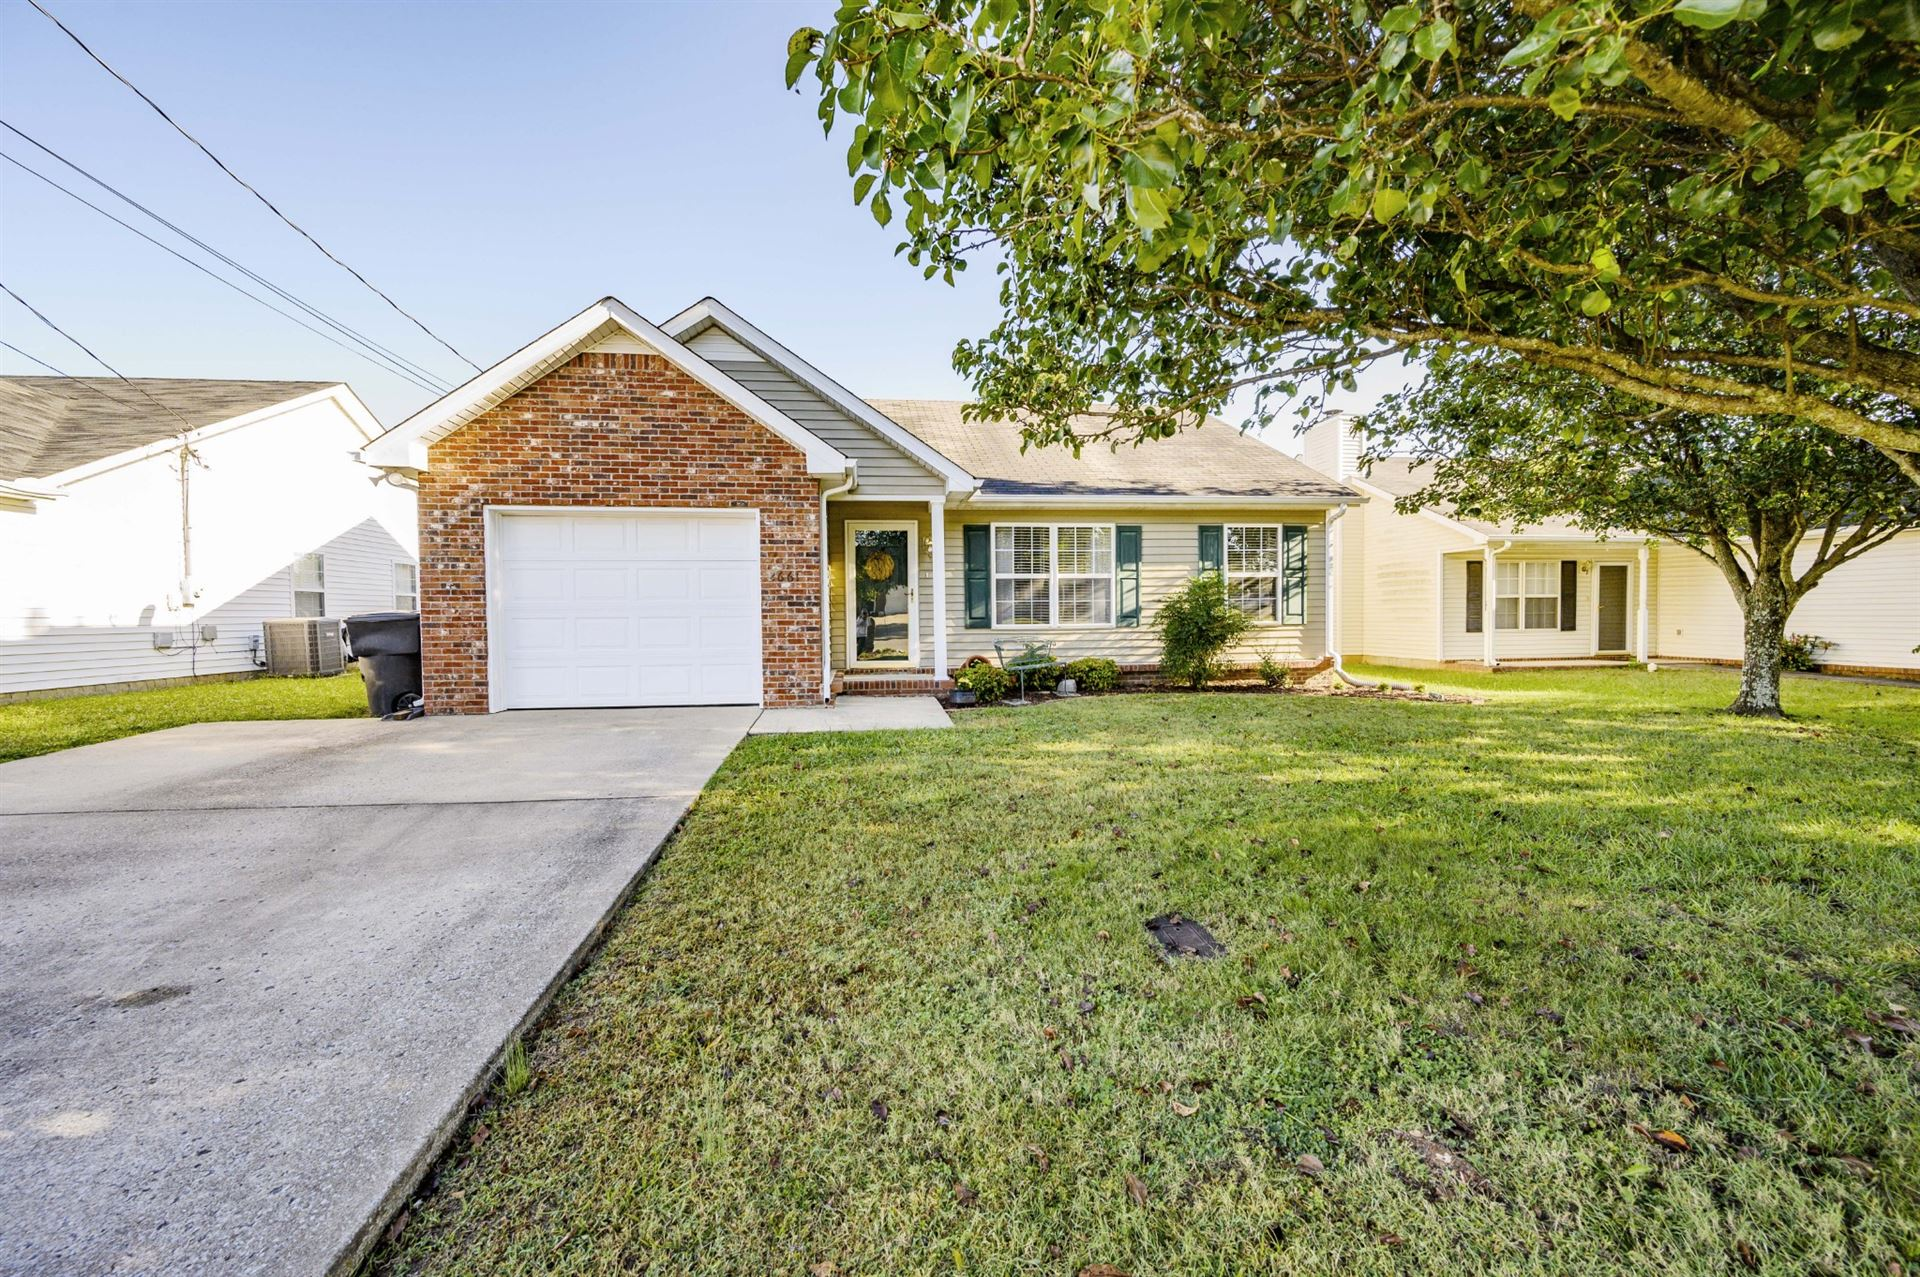 Photo of 2661 Gold Valley Dr, Murfreesboro, TN 37130 (MLS # 2222341)